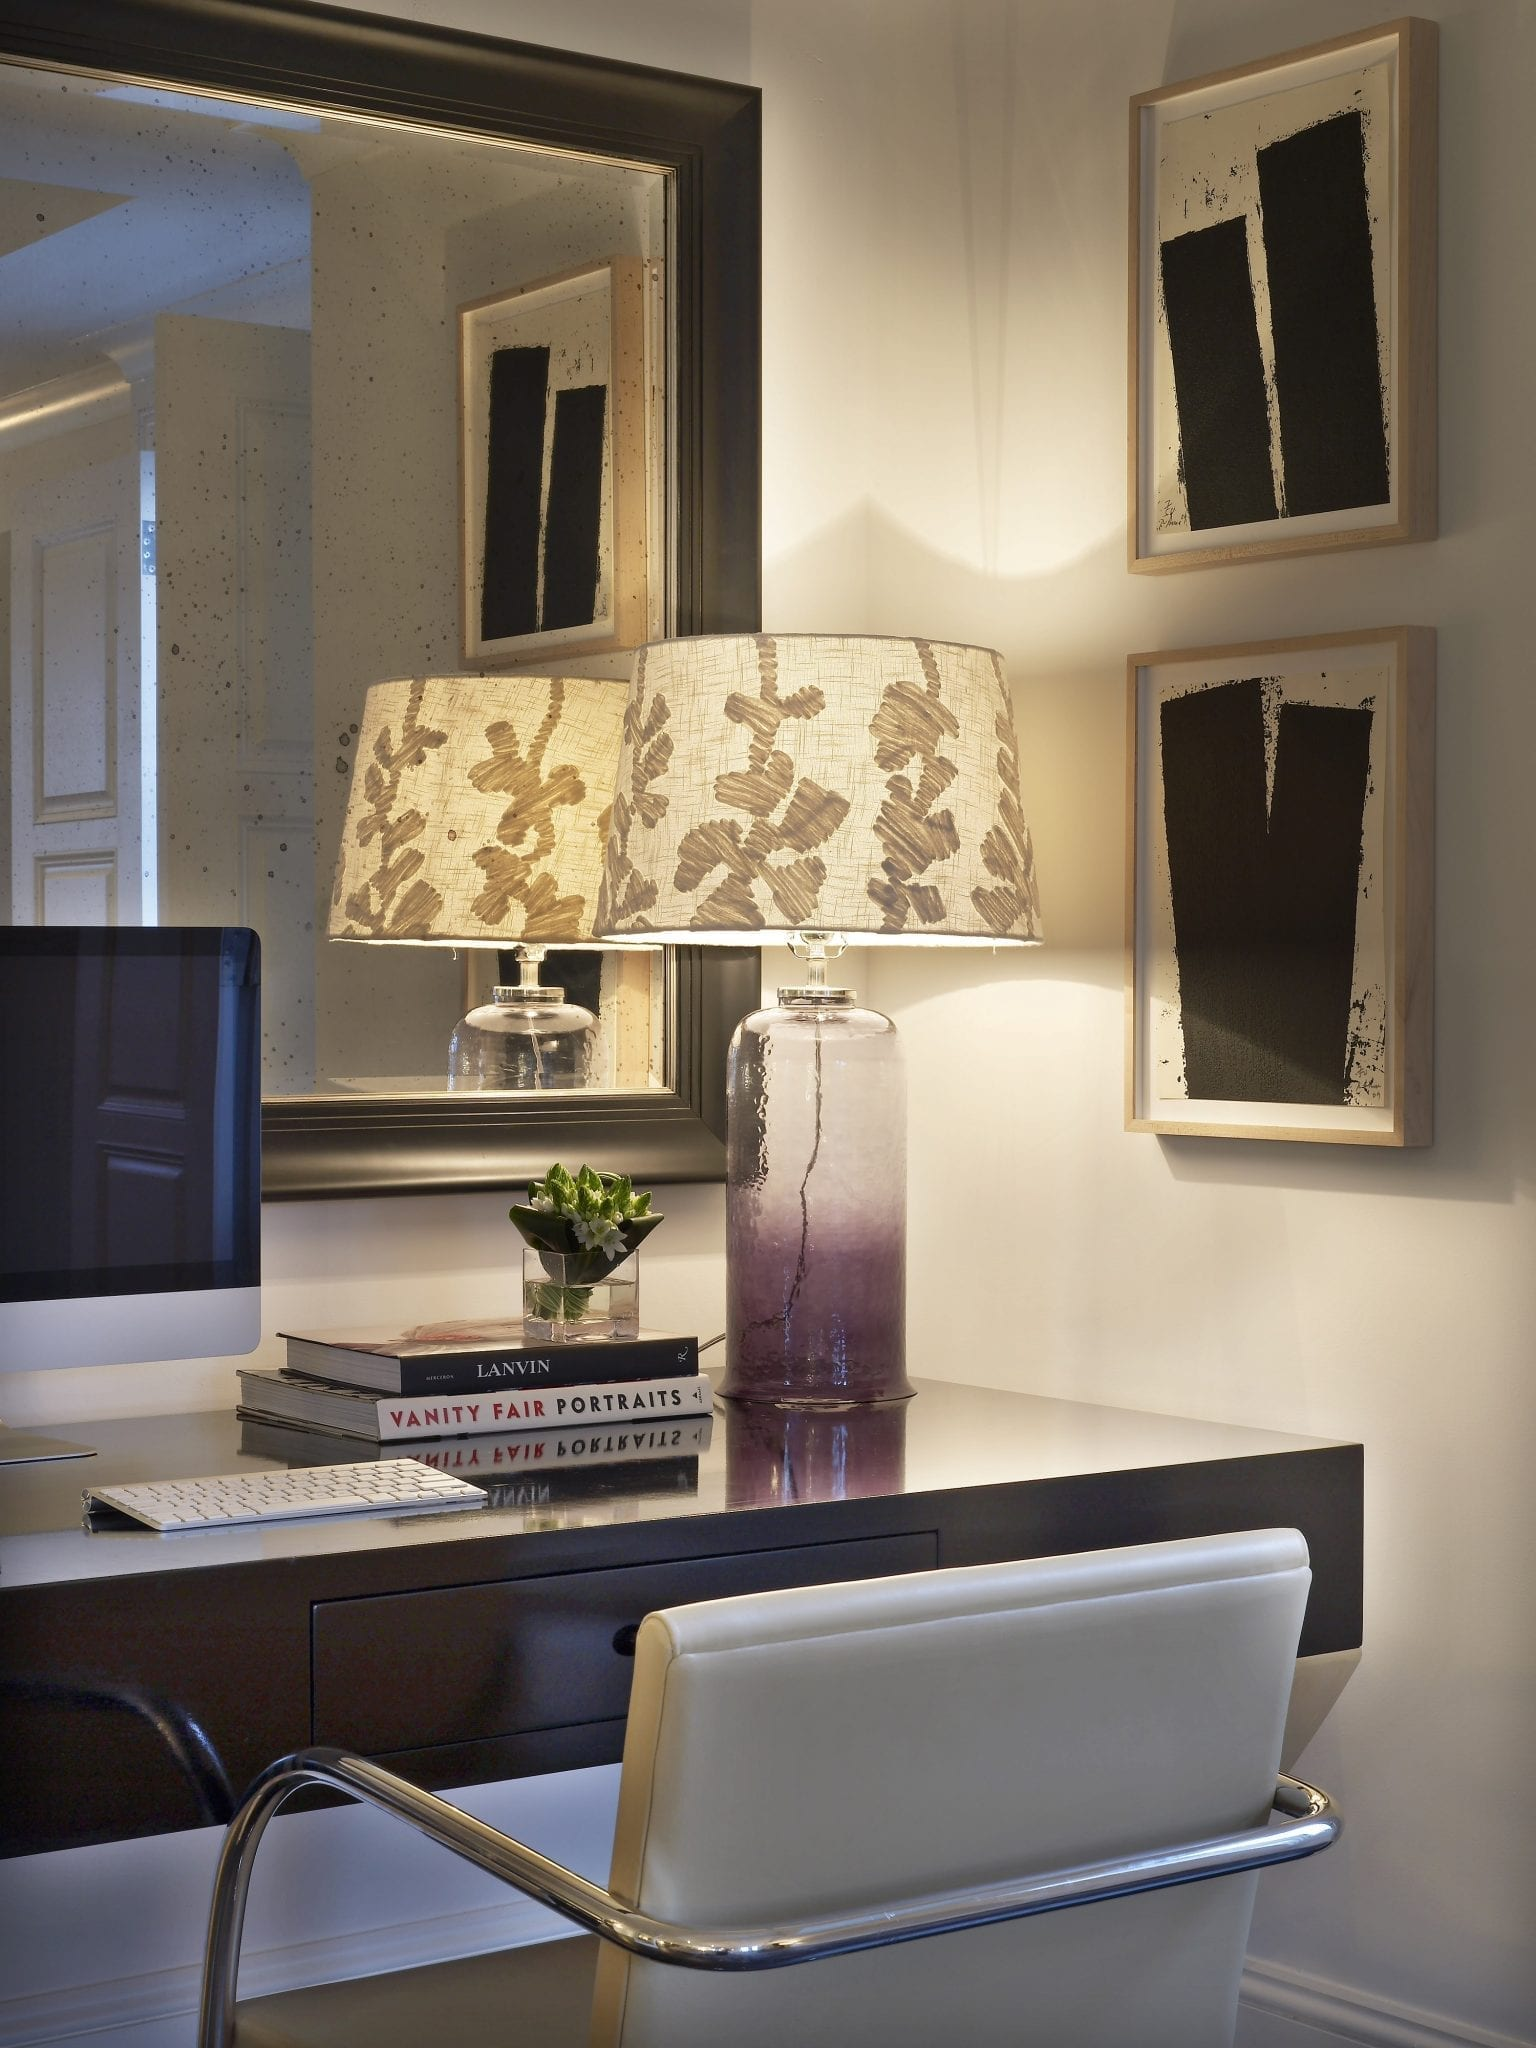 Close up of a corner desk area, inside the Surrey Hotel's Presidential Suite. The lamp is turned on, placed just beside two books and a small plant vase stacked up.